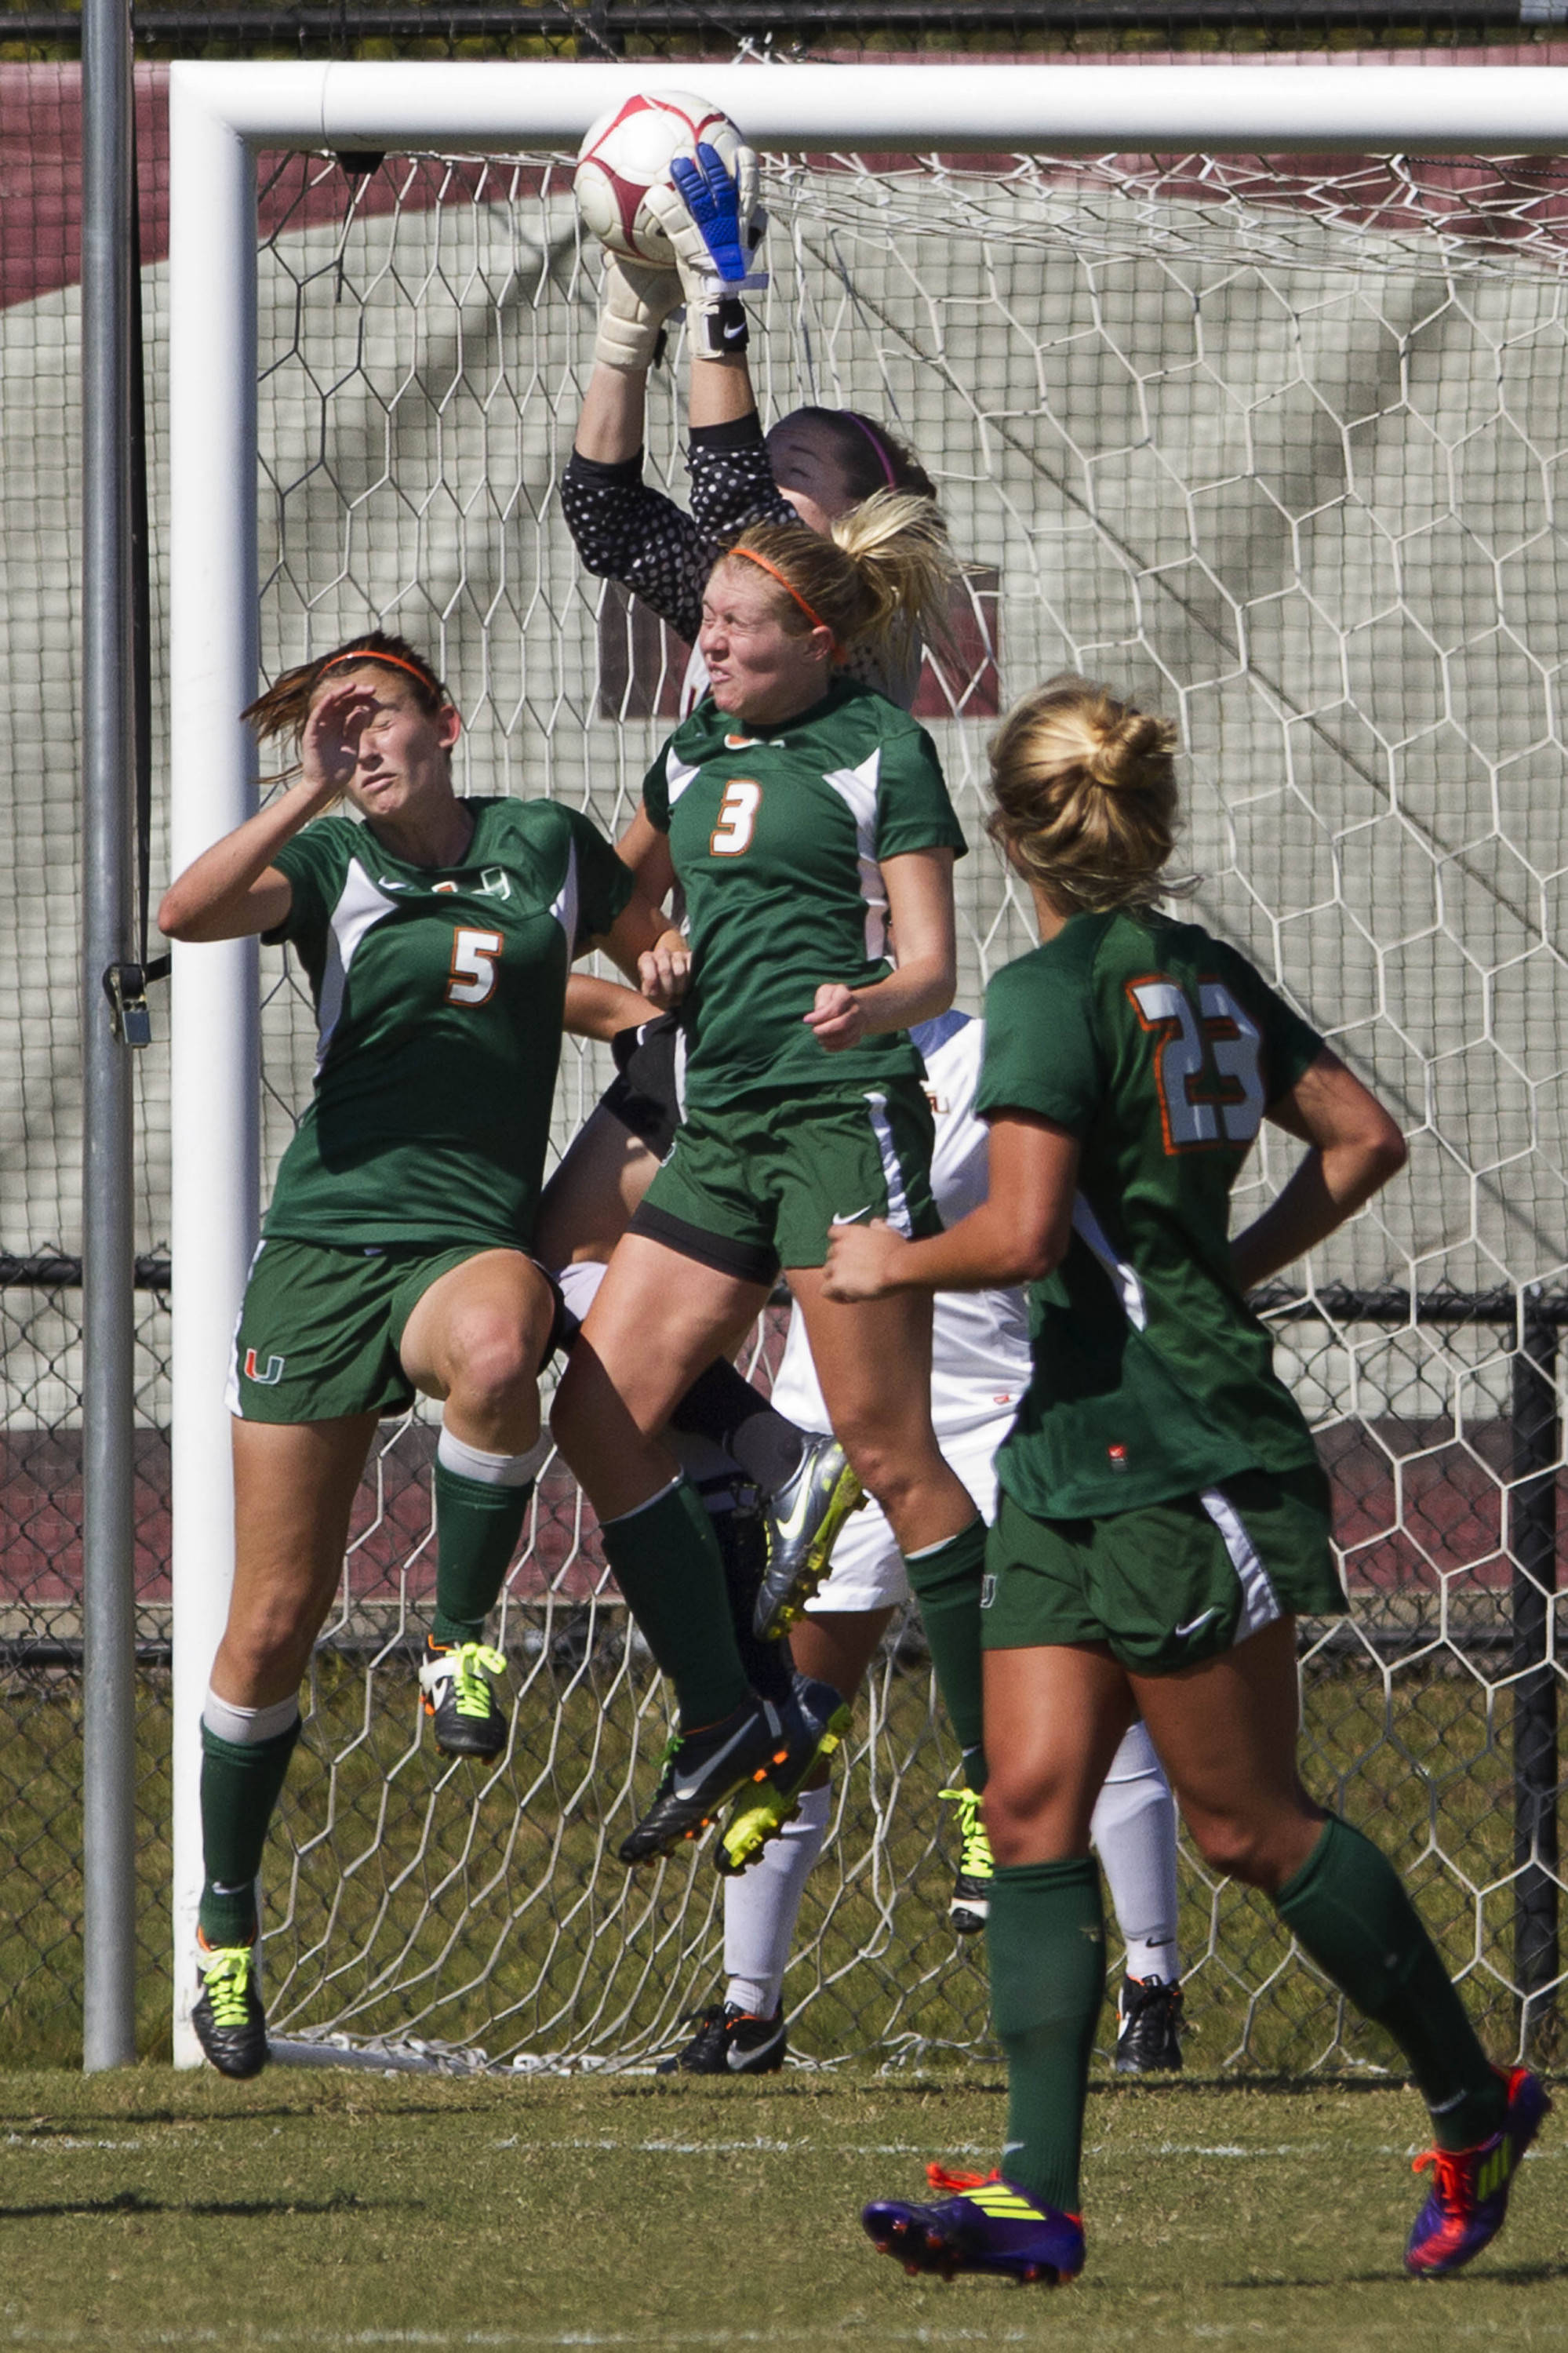 FSU Keeper Kelsey Wys (19) makes a save over the heads of Miami players.